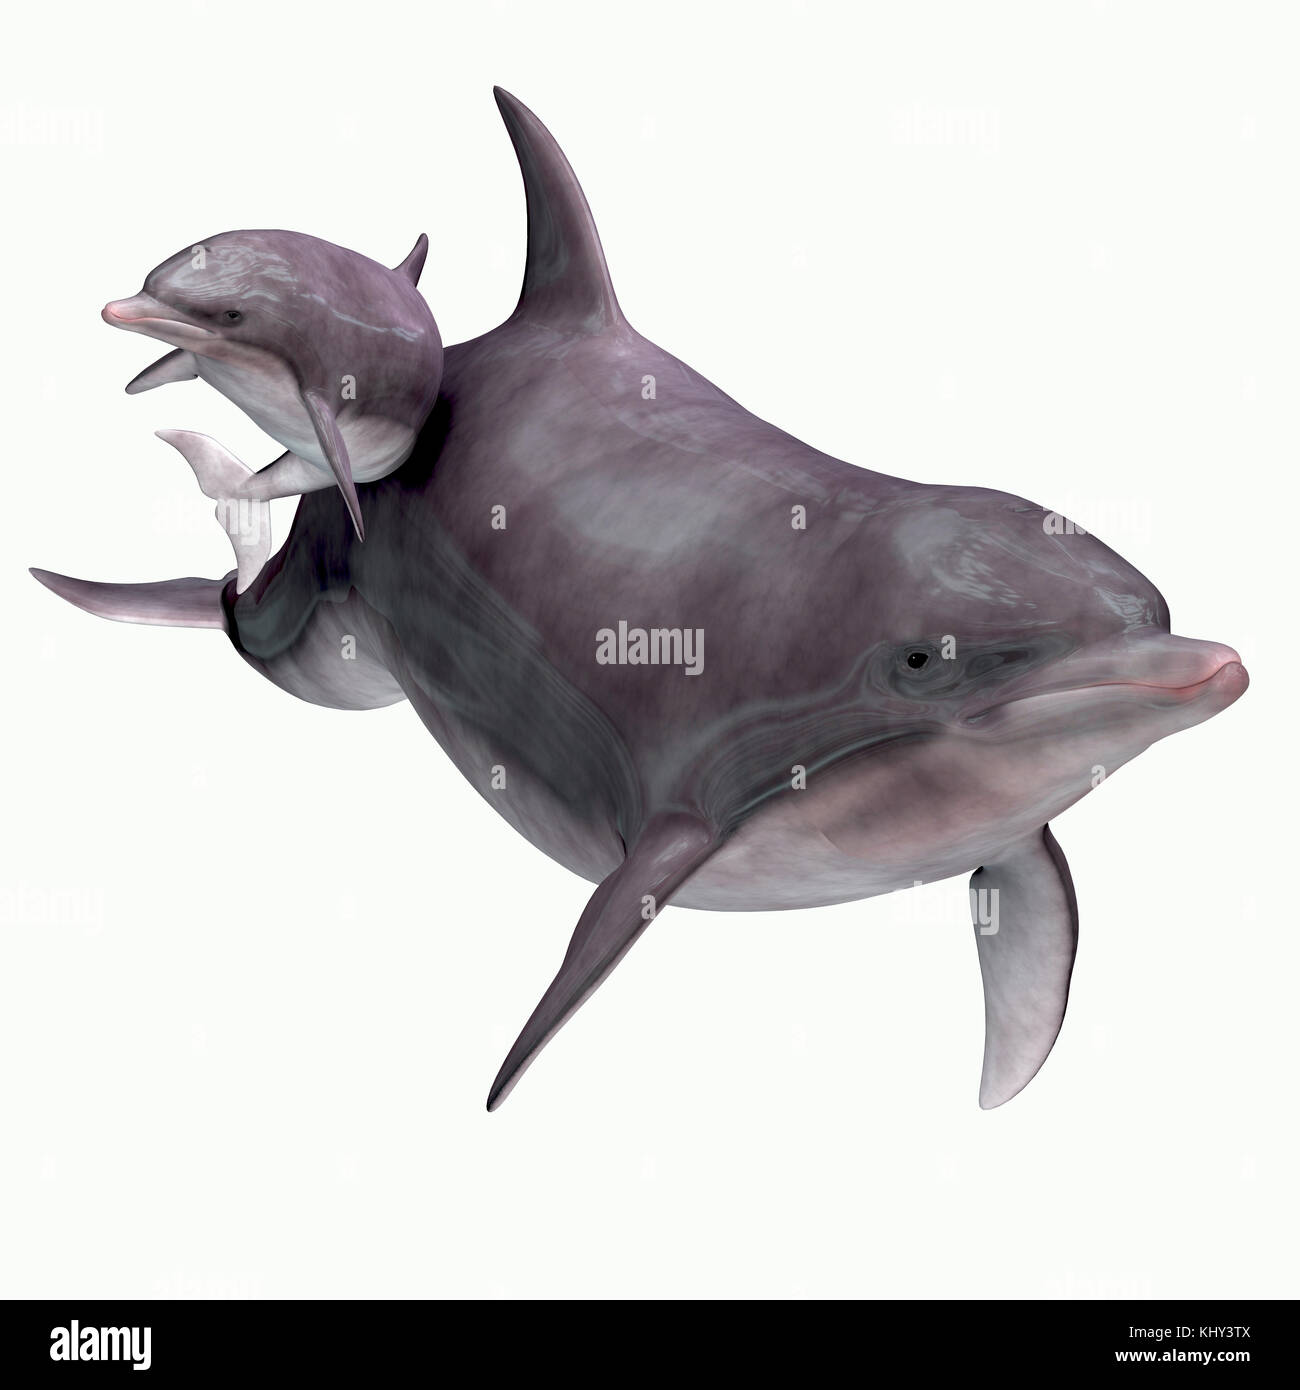 Bottlenose Dolphin Mother and Baby - The Bottlenose dolphin inhabits warm and temperate seas and searches for forage - Stock Image